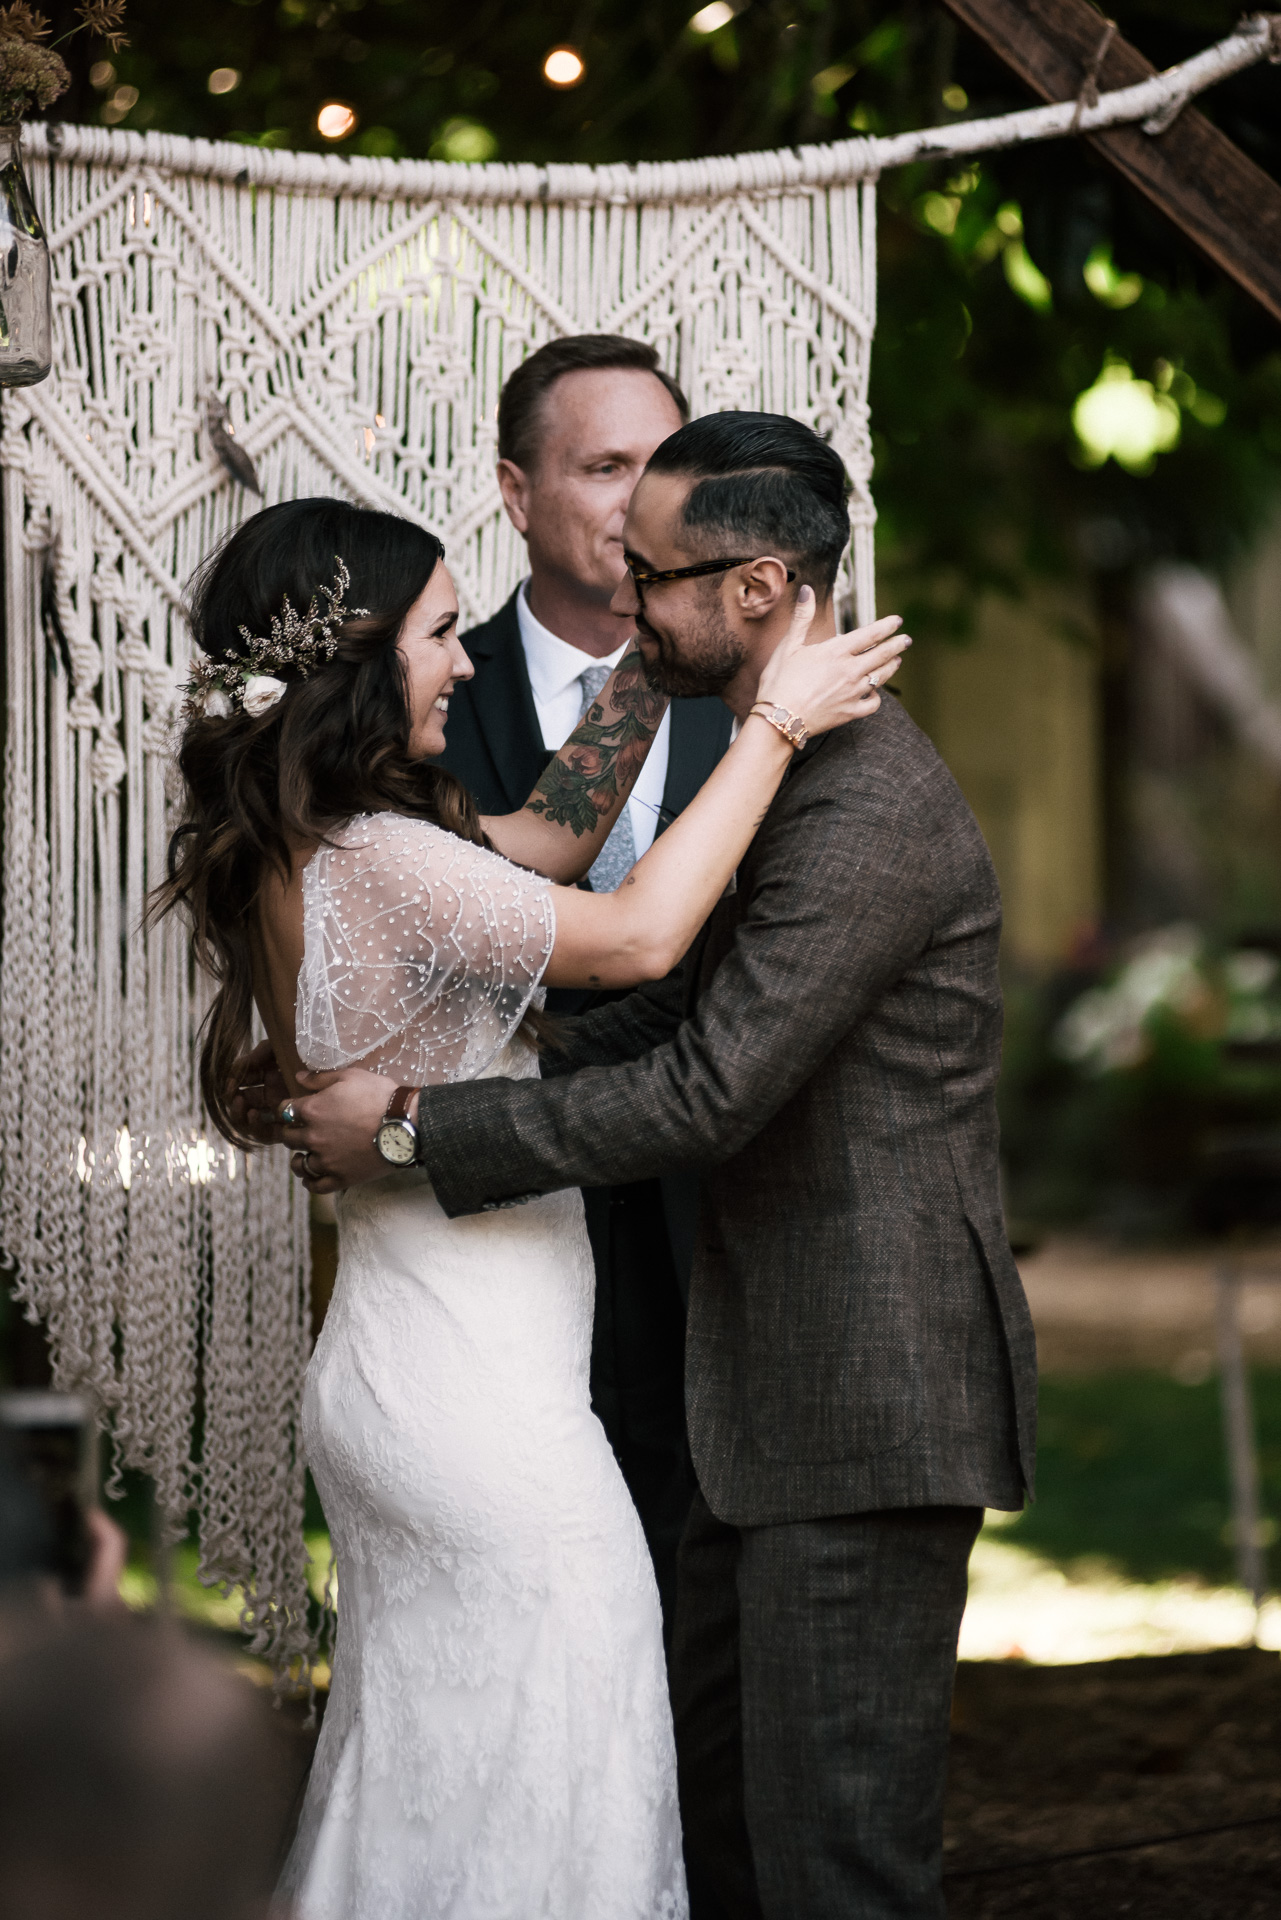 moment just before the first kiss shot by wedding photographer at the charming St. George Hotel in Volcano California